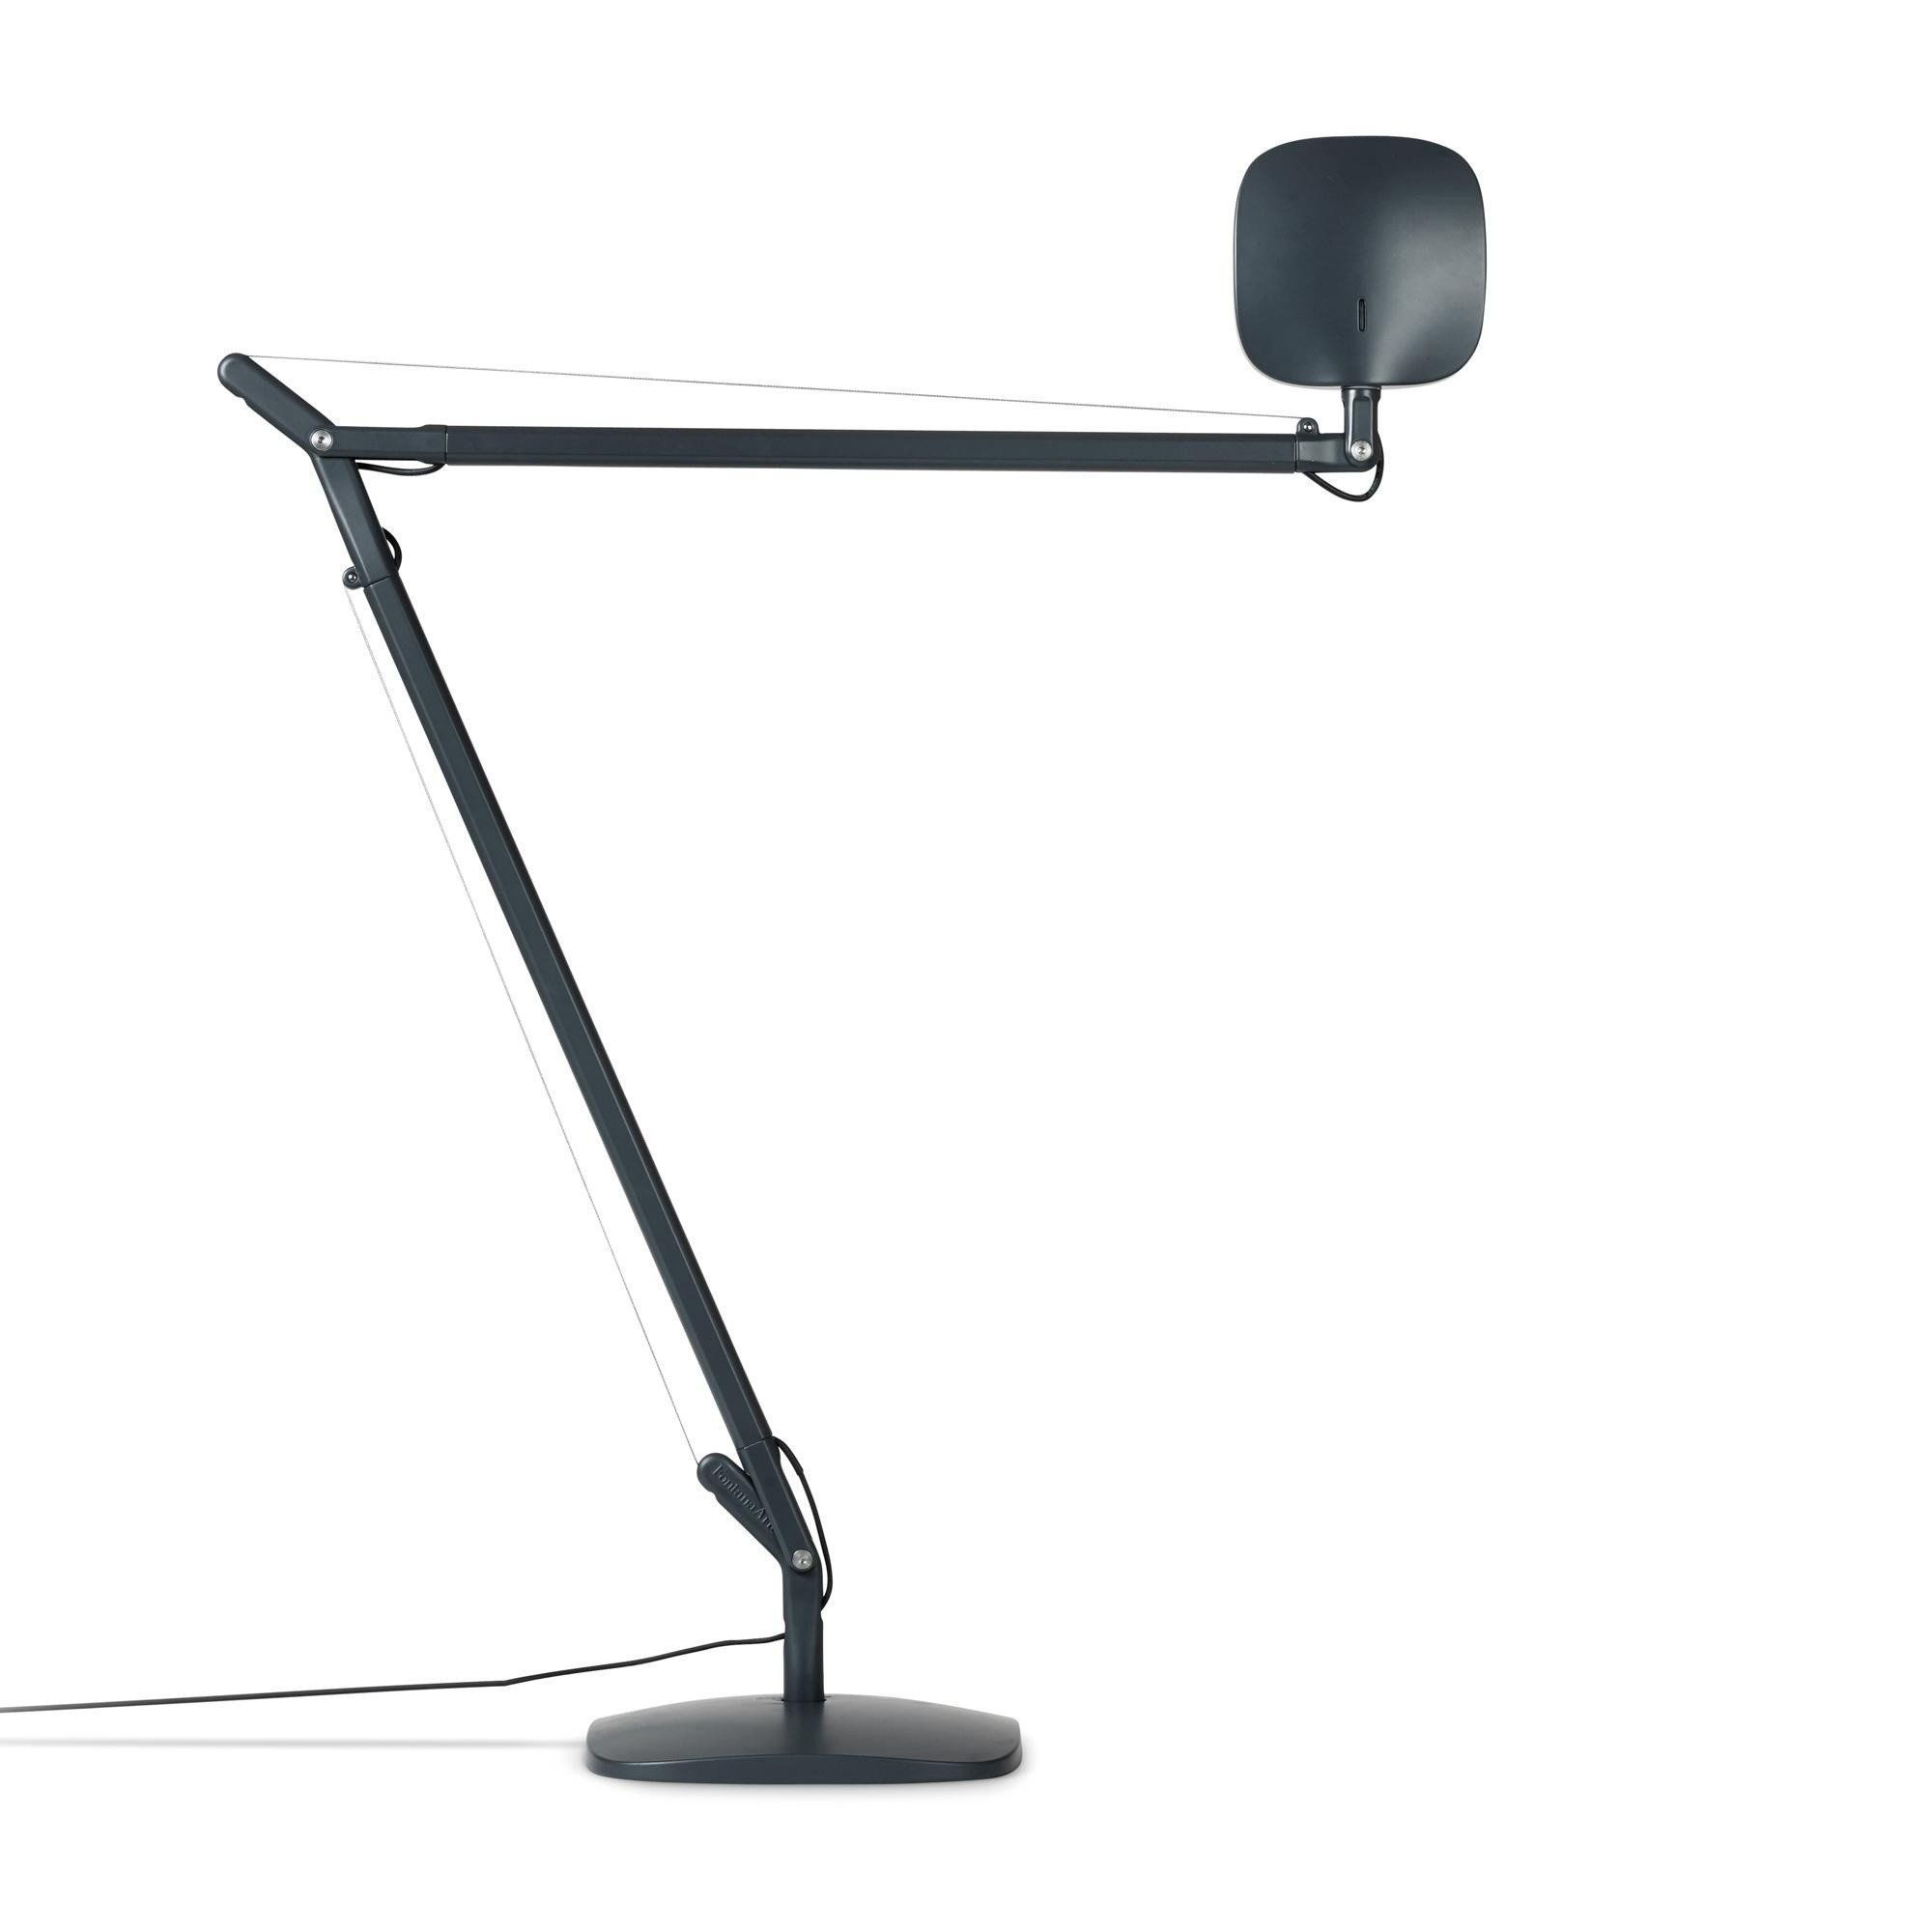 tac index w k black desk vt de lighting led reichelt v lamp en elektronik at interior